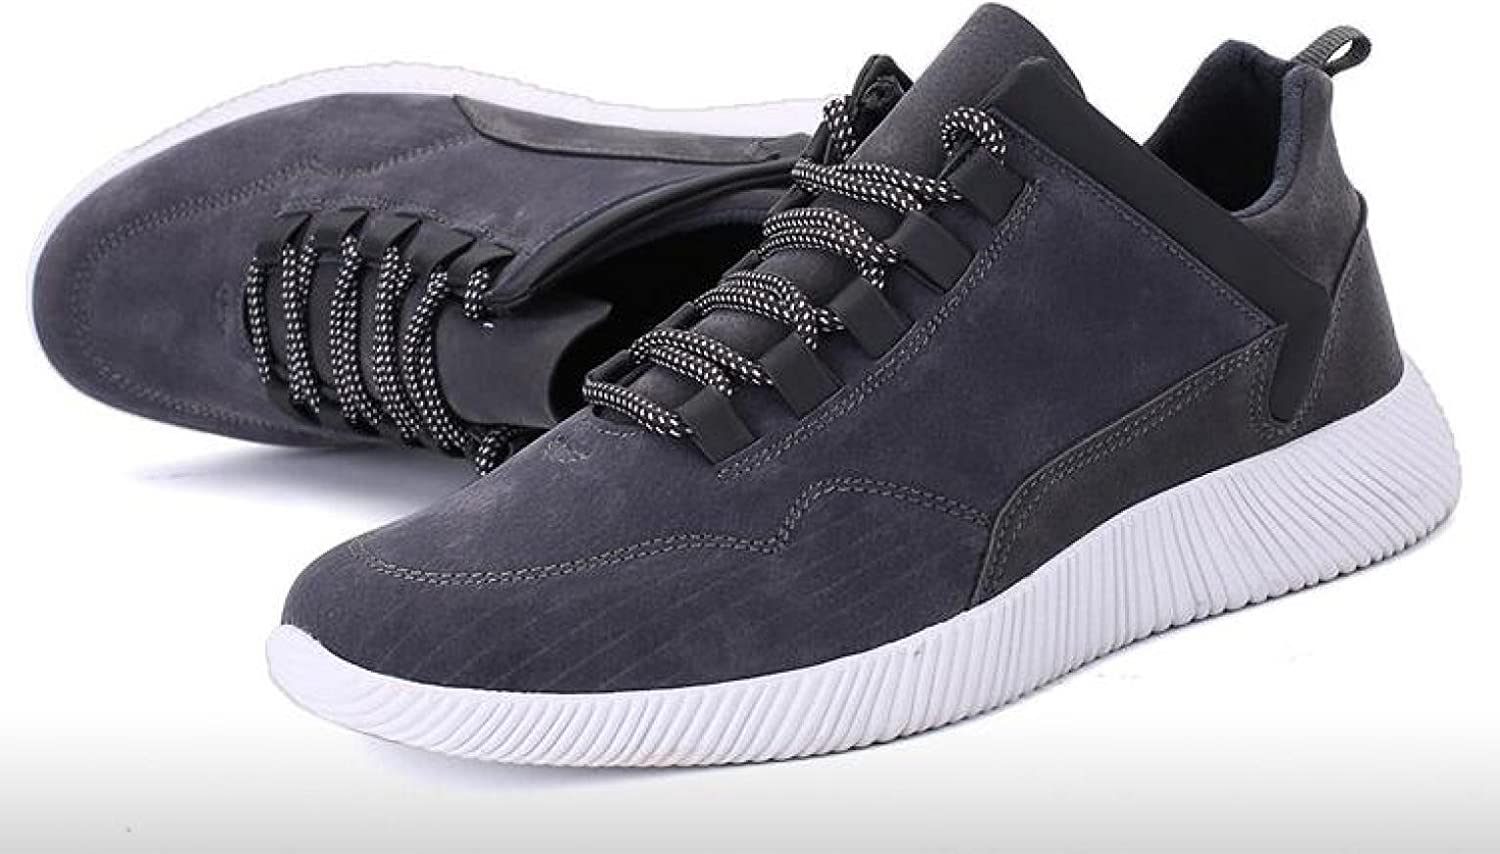 DSFGHE Sports shoes Men's Casual shoes Lightweight Breathable Sneakers